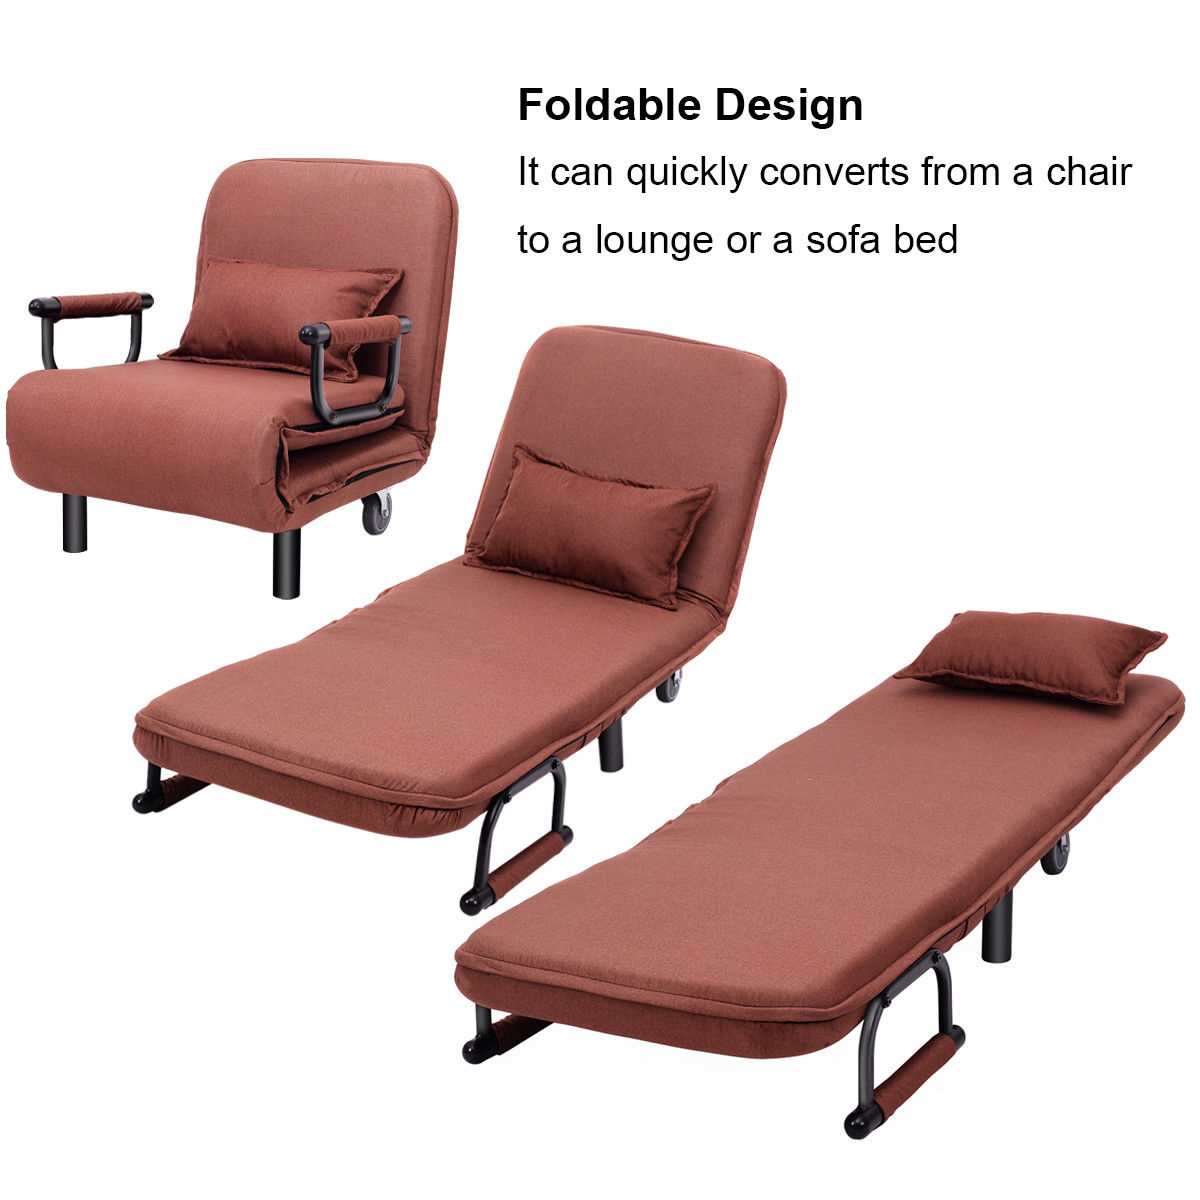 Foldable Bed Chair Costway Convertible Sofa Bed Folding Arm Chair Sleeper Leisure Recliner Lounge Couch